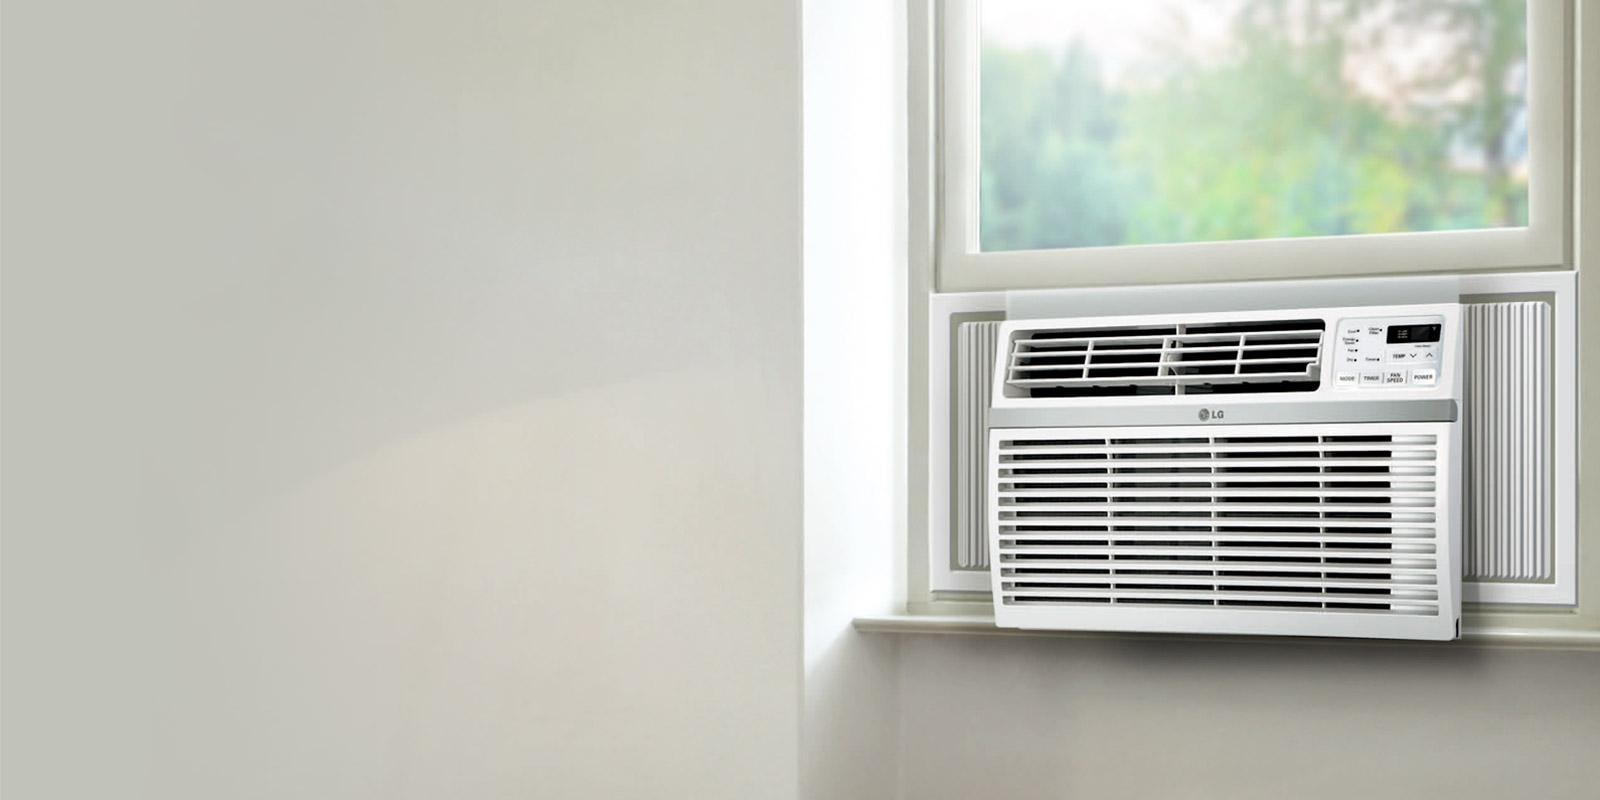 Lg air conditioner units stay cool comfortable lg usa for 14 wide window air conditioner